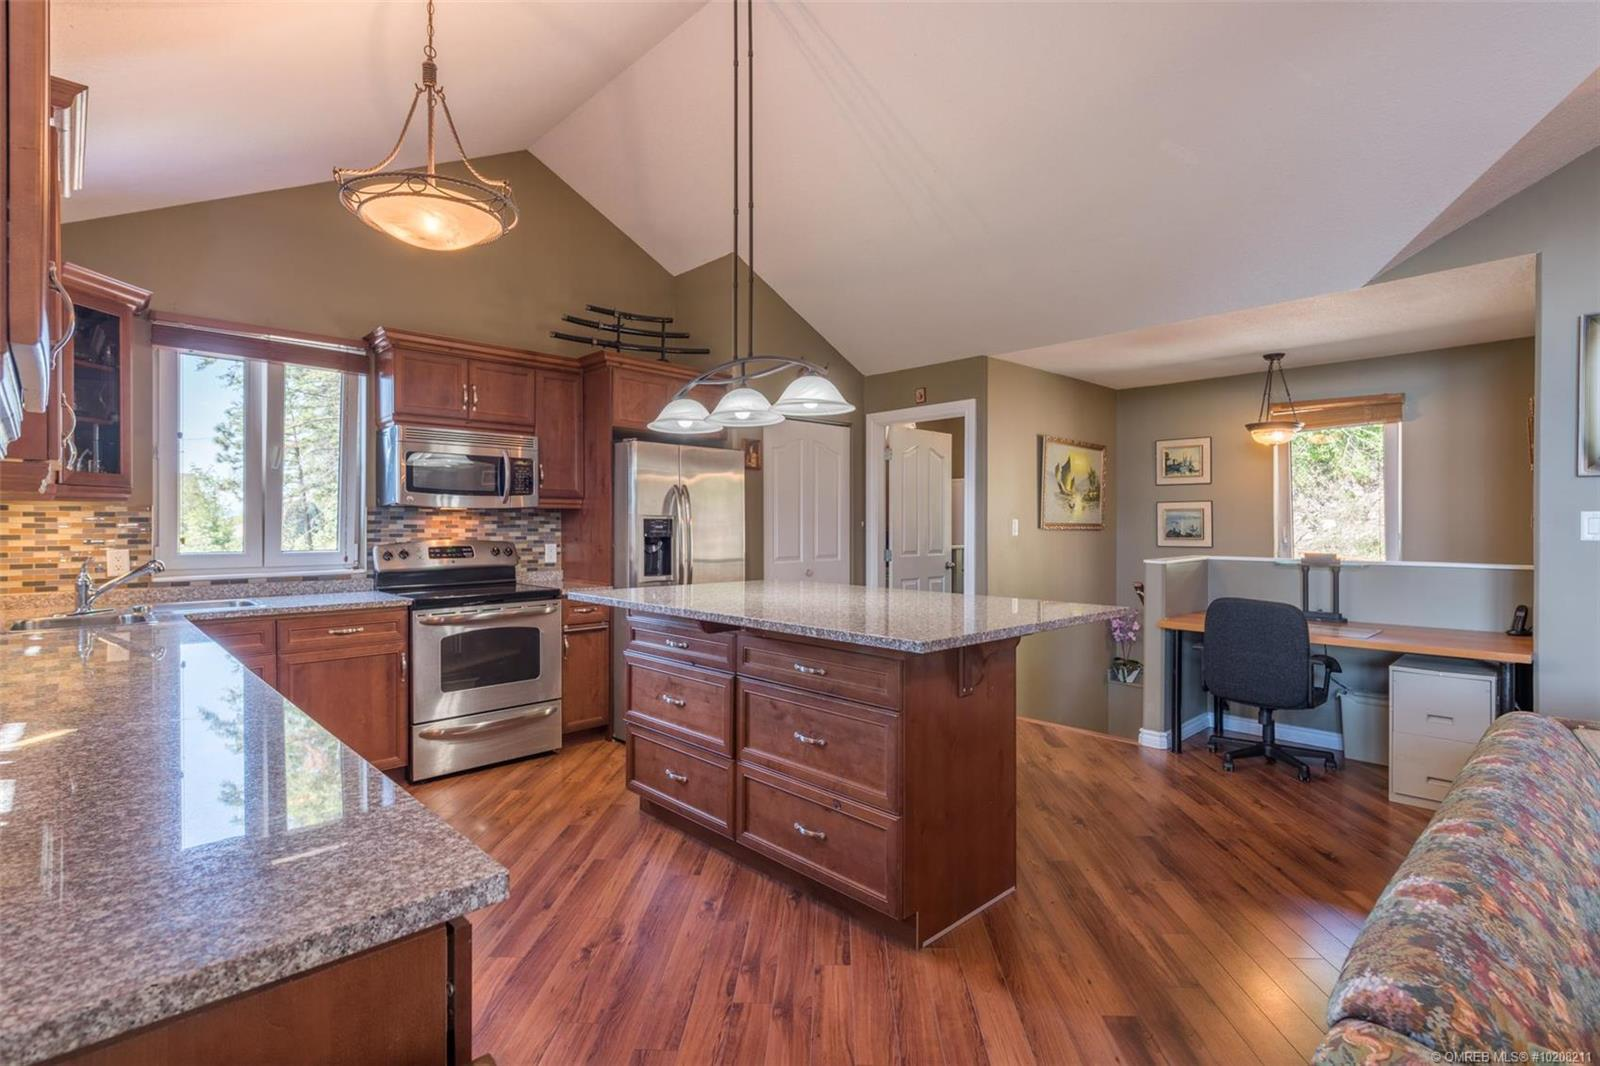 Listing 10208211 - Thumbmnail Photo # 7